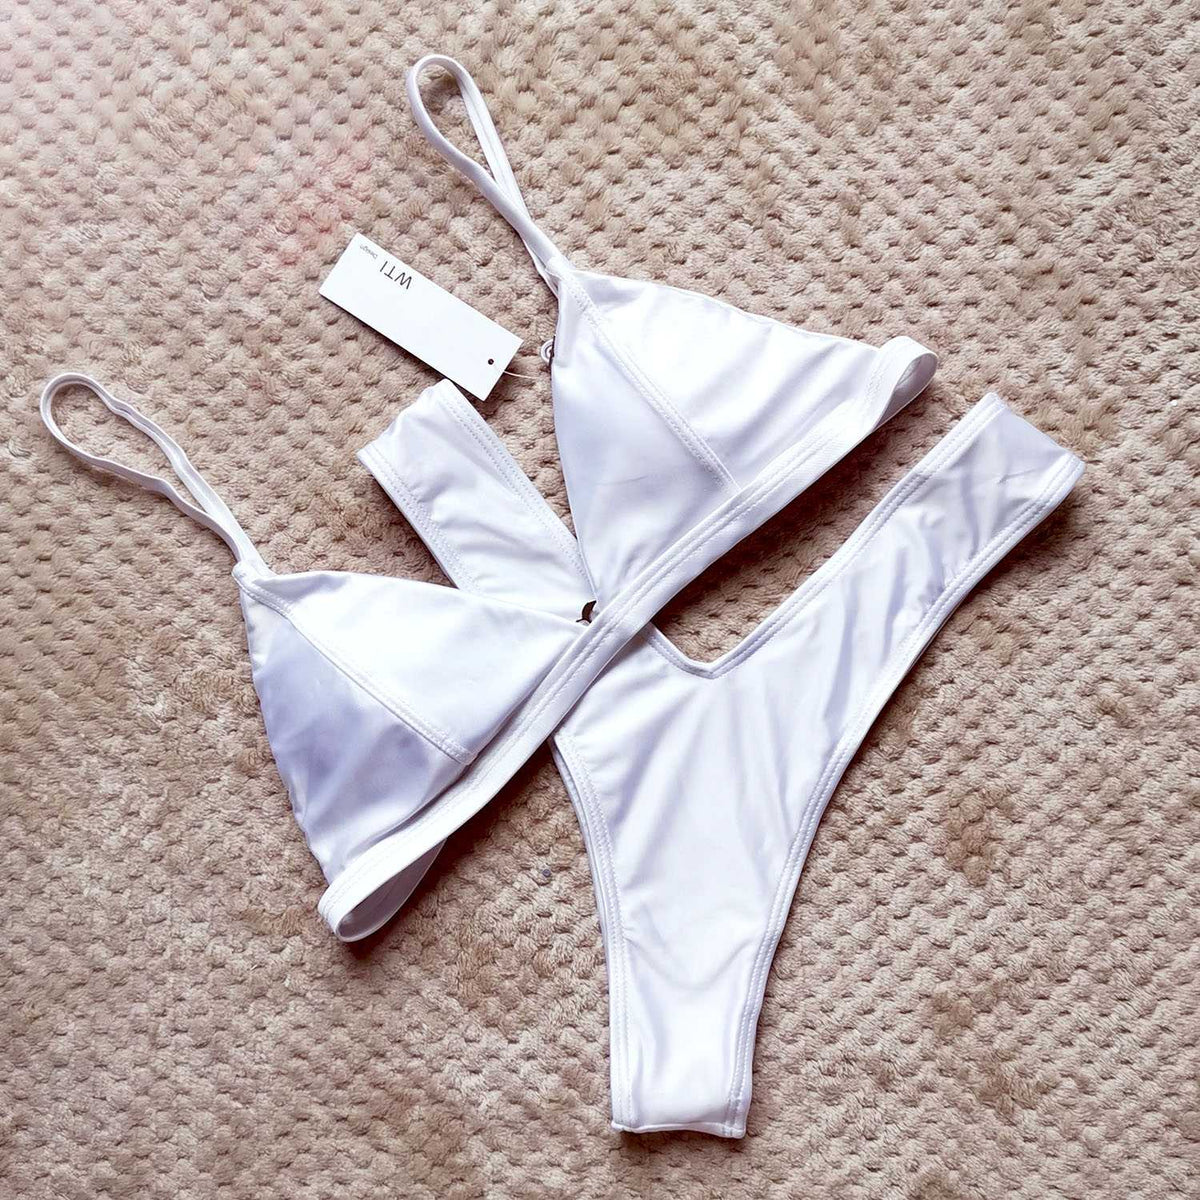 Classic Triangle High Cut Bikini Set - worthtryit.com